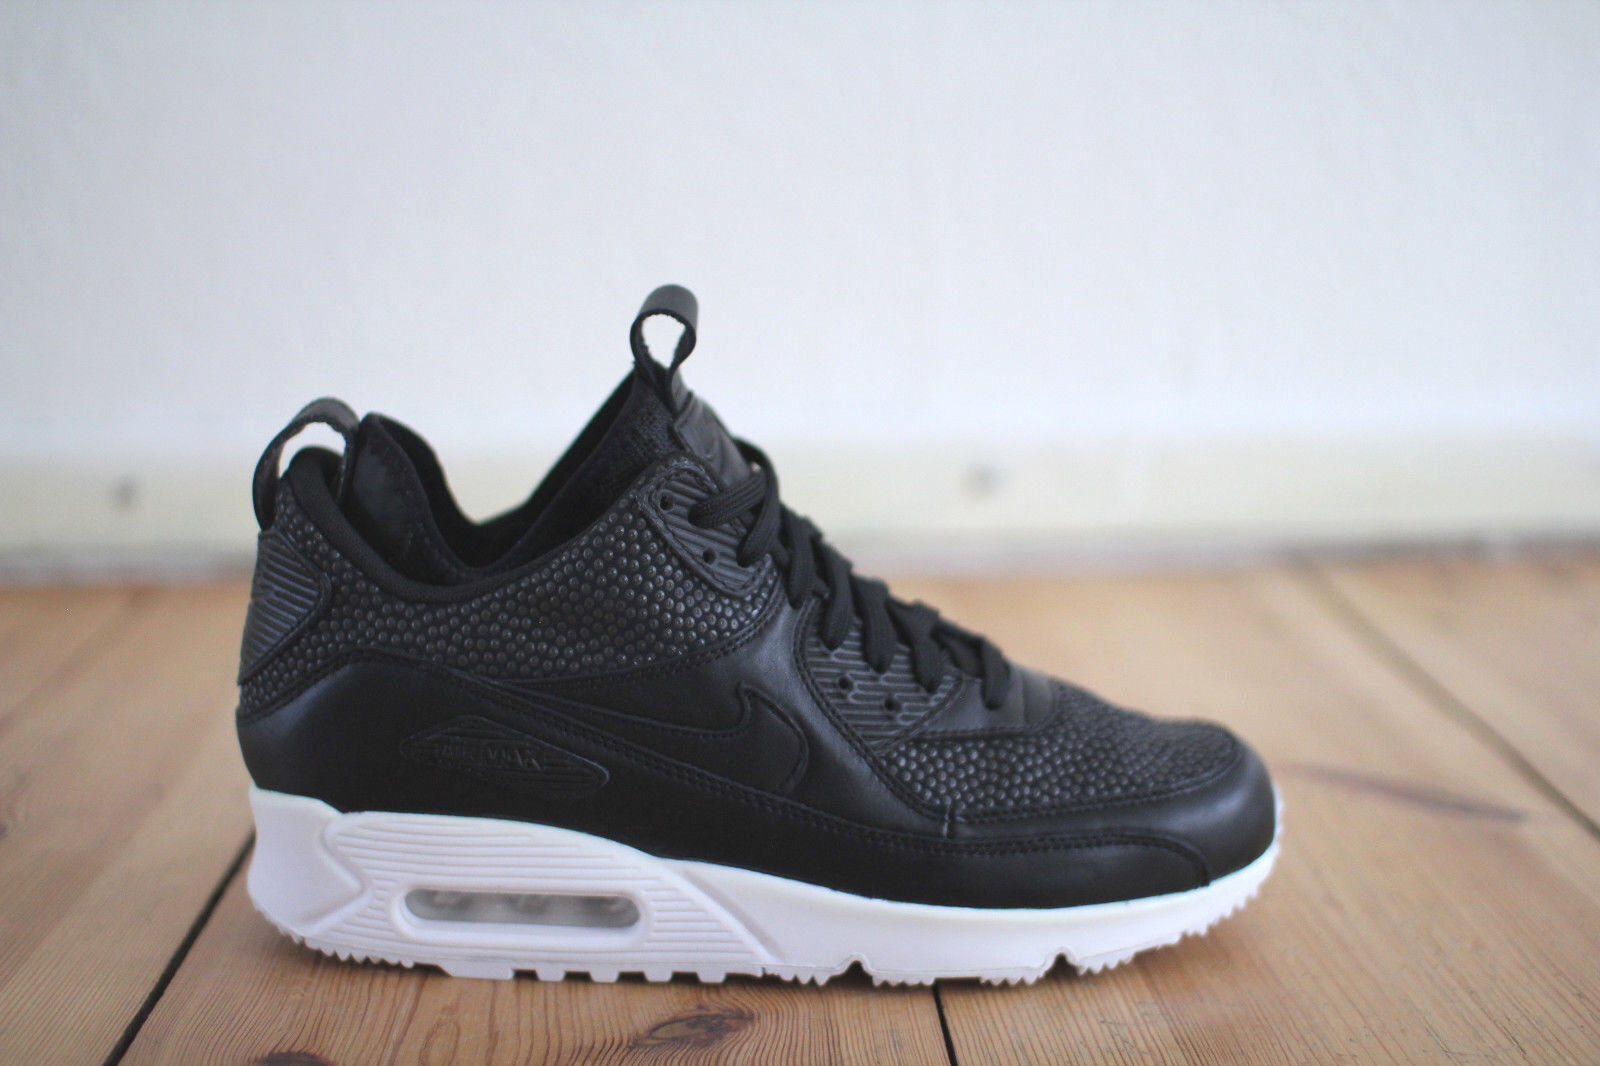 8d515e553f Nike Max 90 Sneakerboot Tech black white Gr. 41,42 NEU & OVP Air  noebuf7929-new shoes